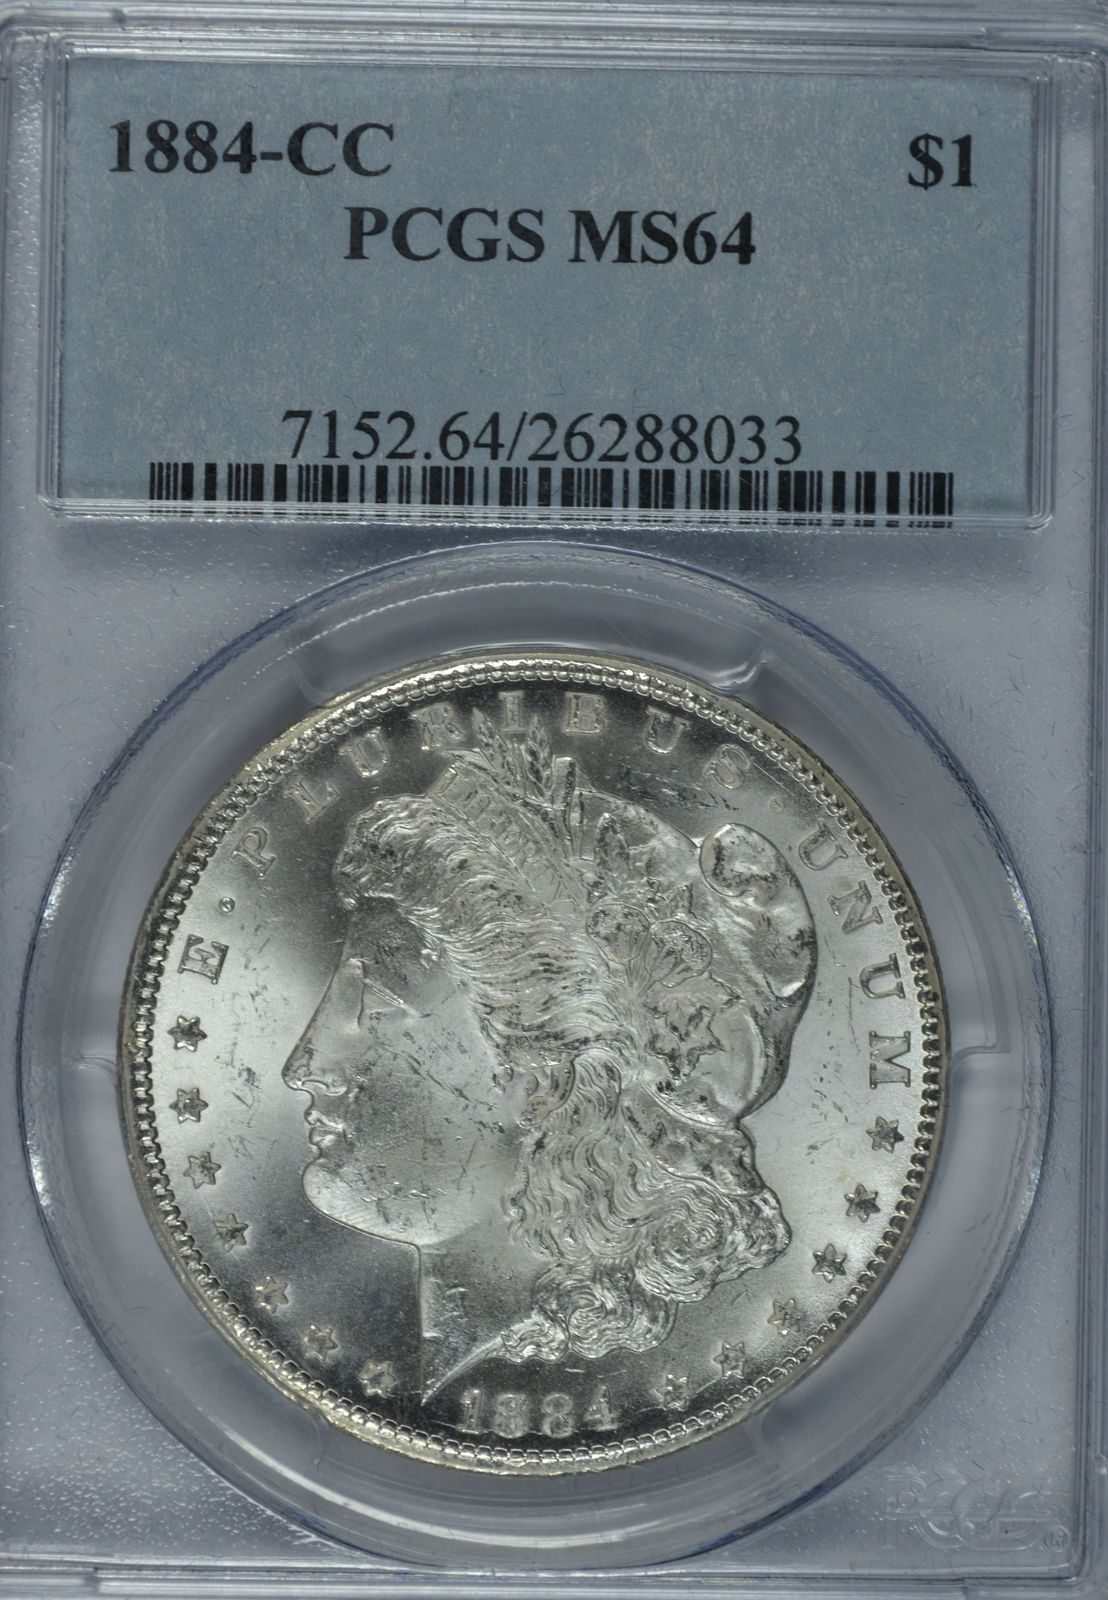 Primary image for 1884 CC Morgan silver dollar PCGS MS64  Carson City